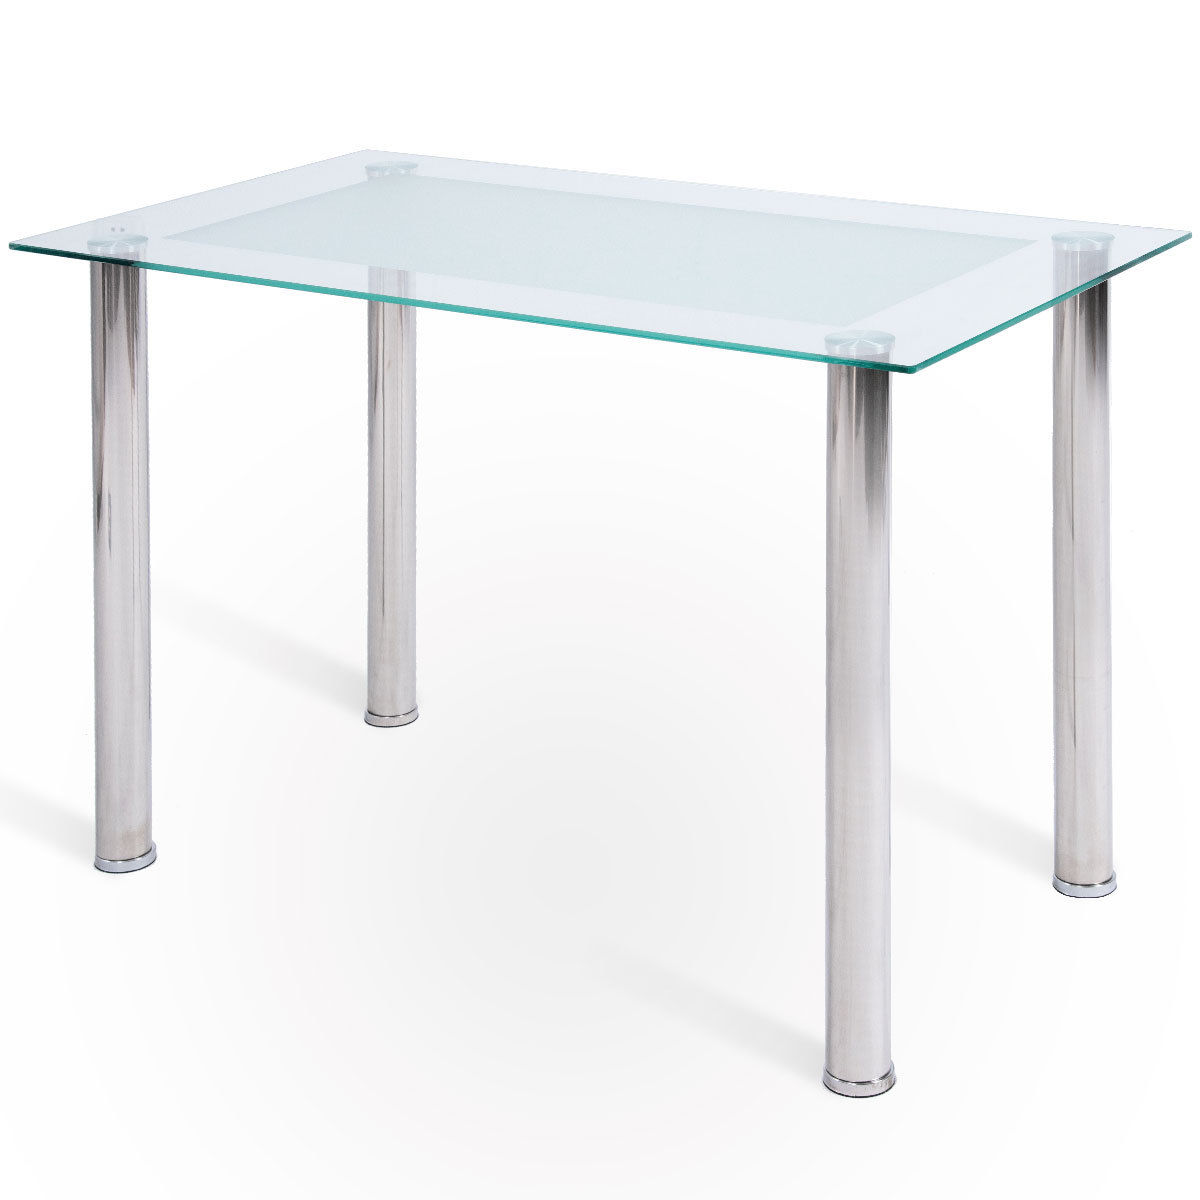 Dining Room Furniture Glass Costway Modern Rectangular Tempered Glass Top Dining Table